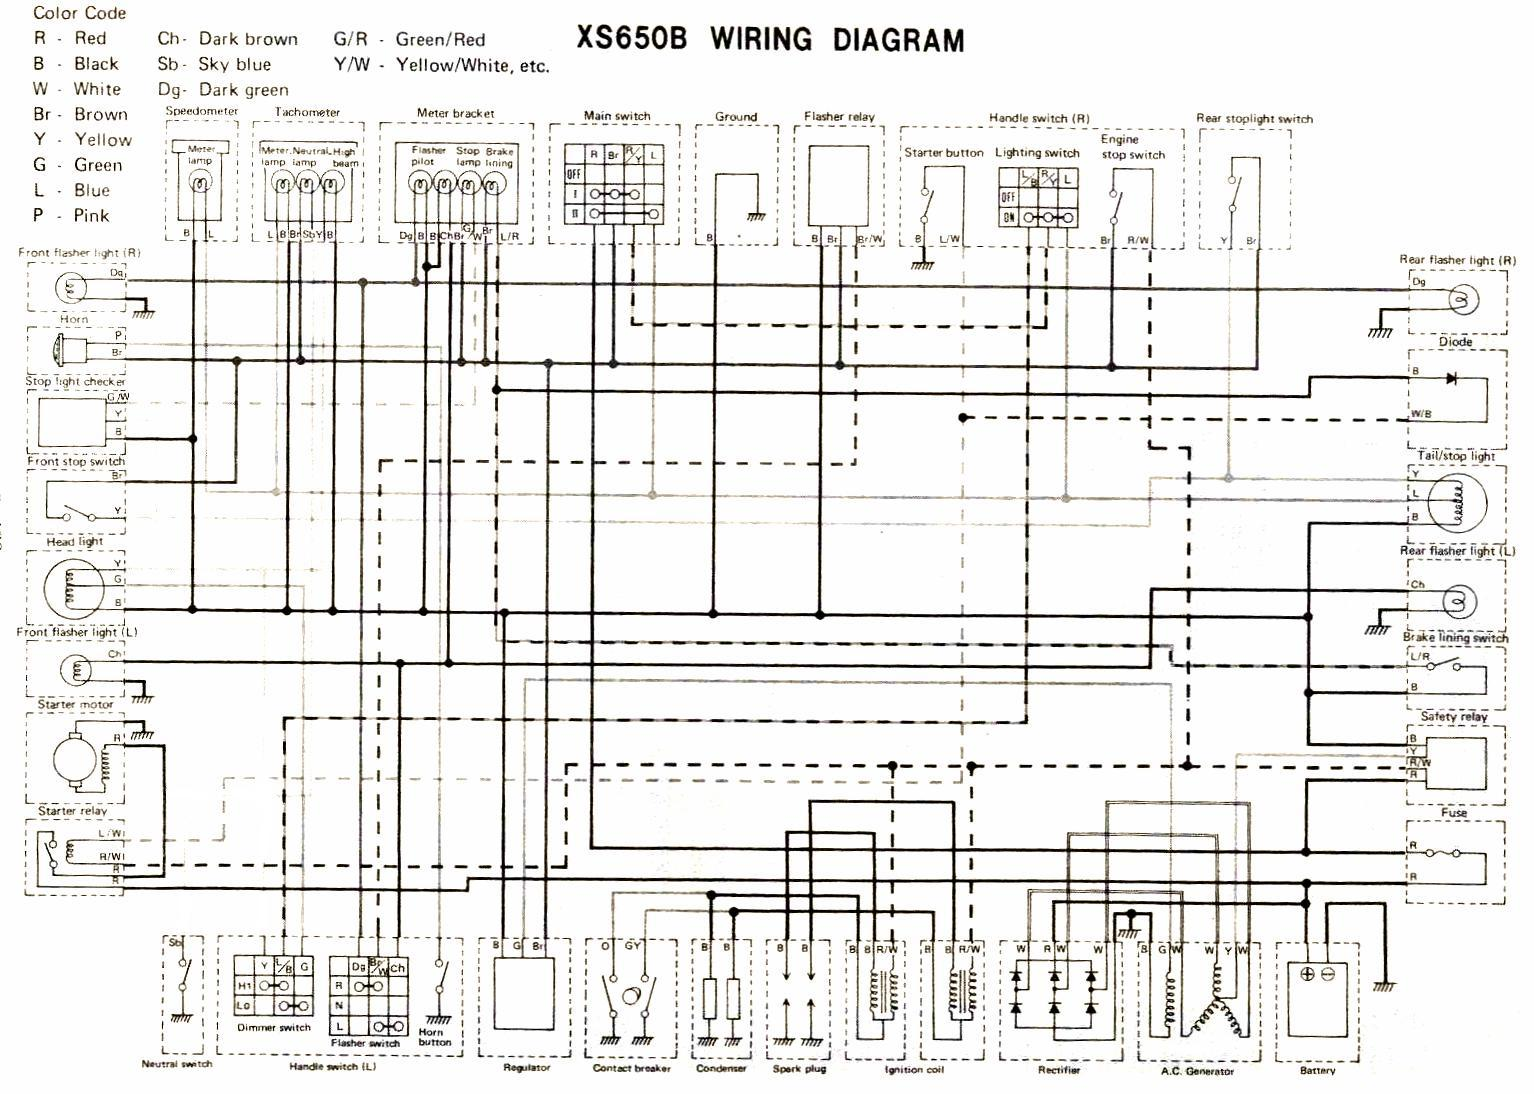 Wiring Diagrams Kawasaki Kvf 400 Diagram 1975 Xs650b